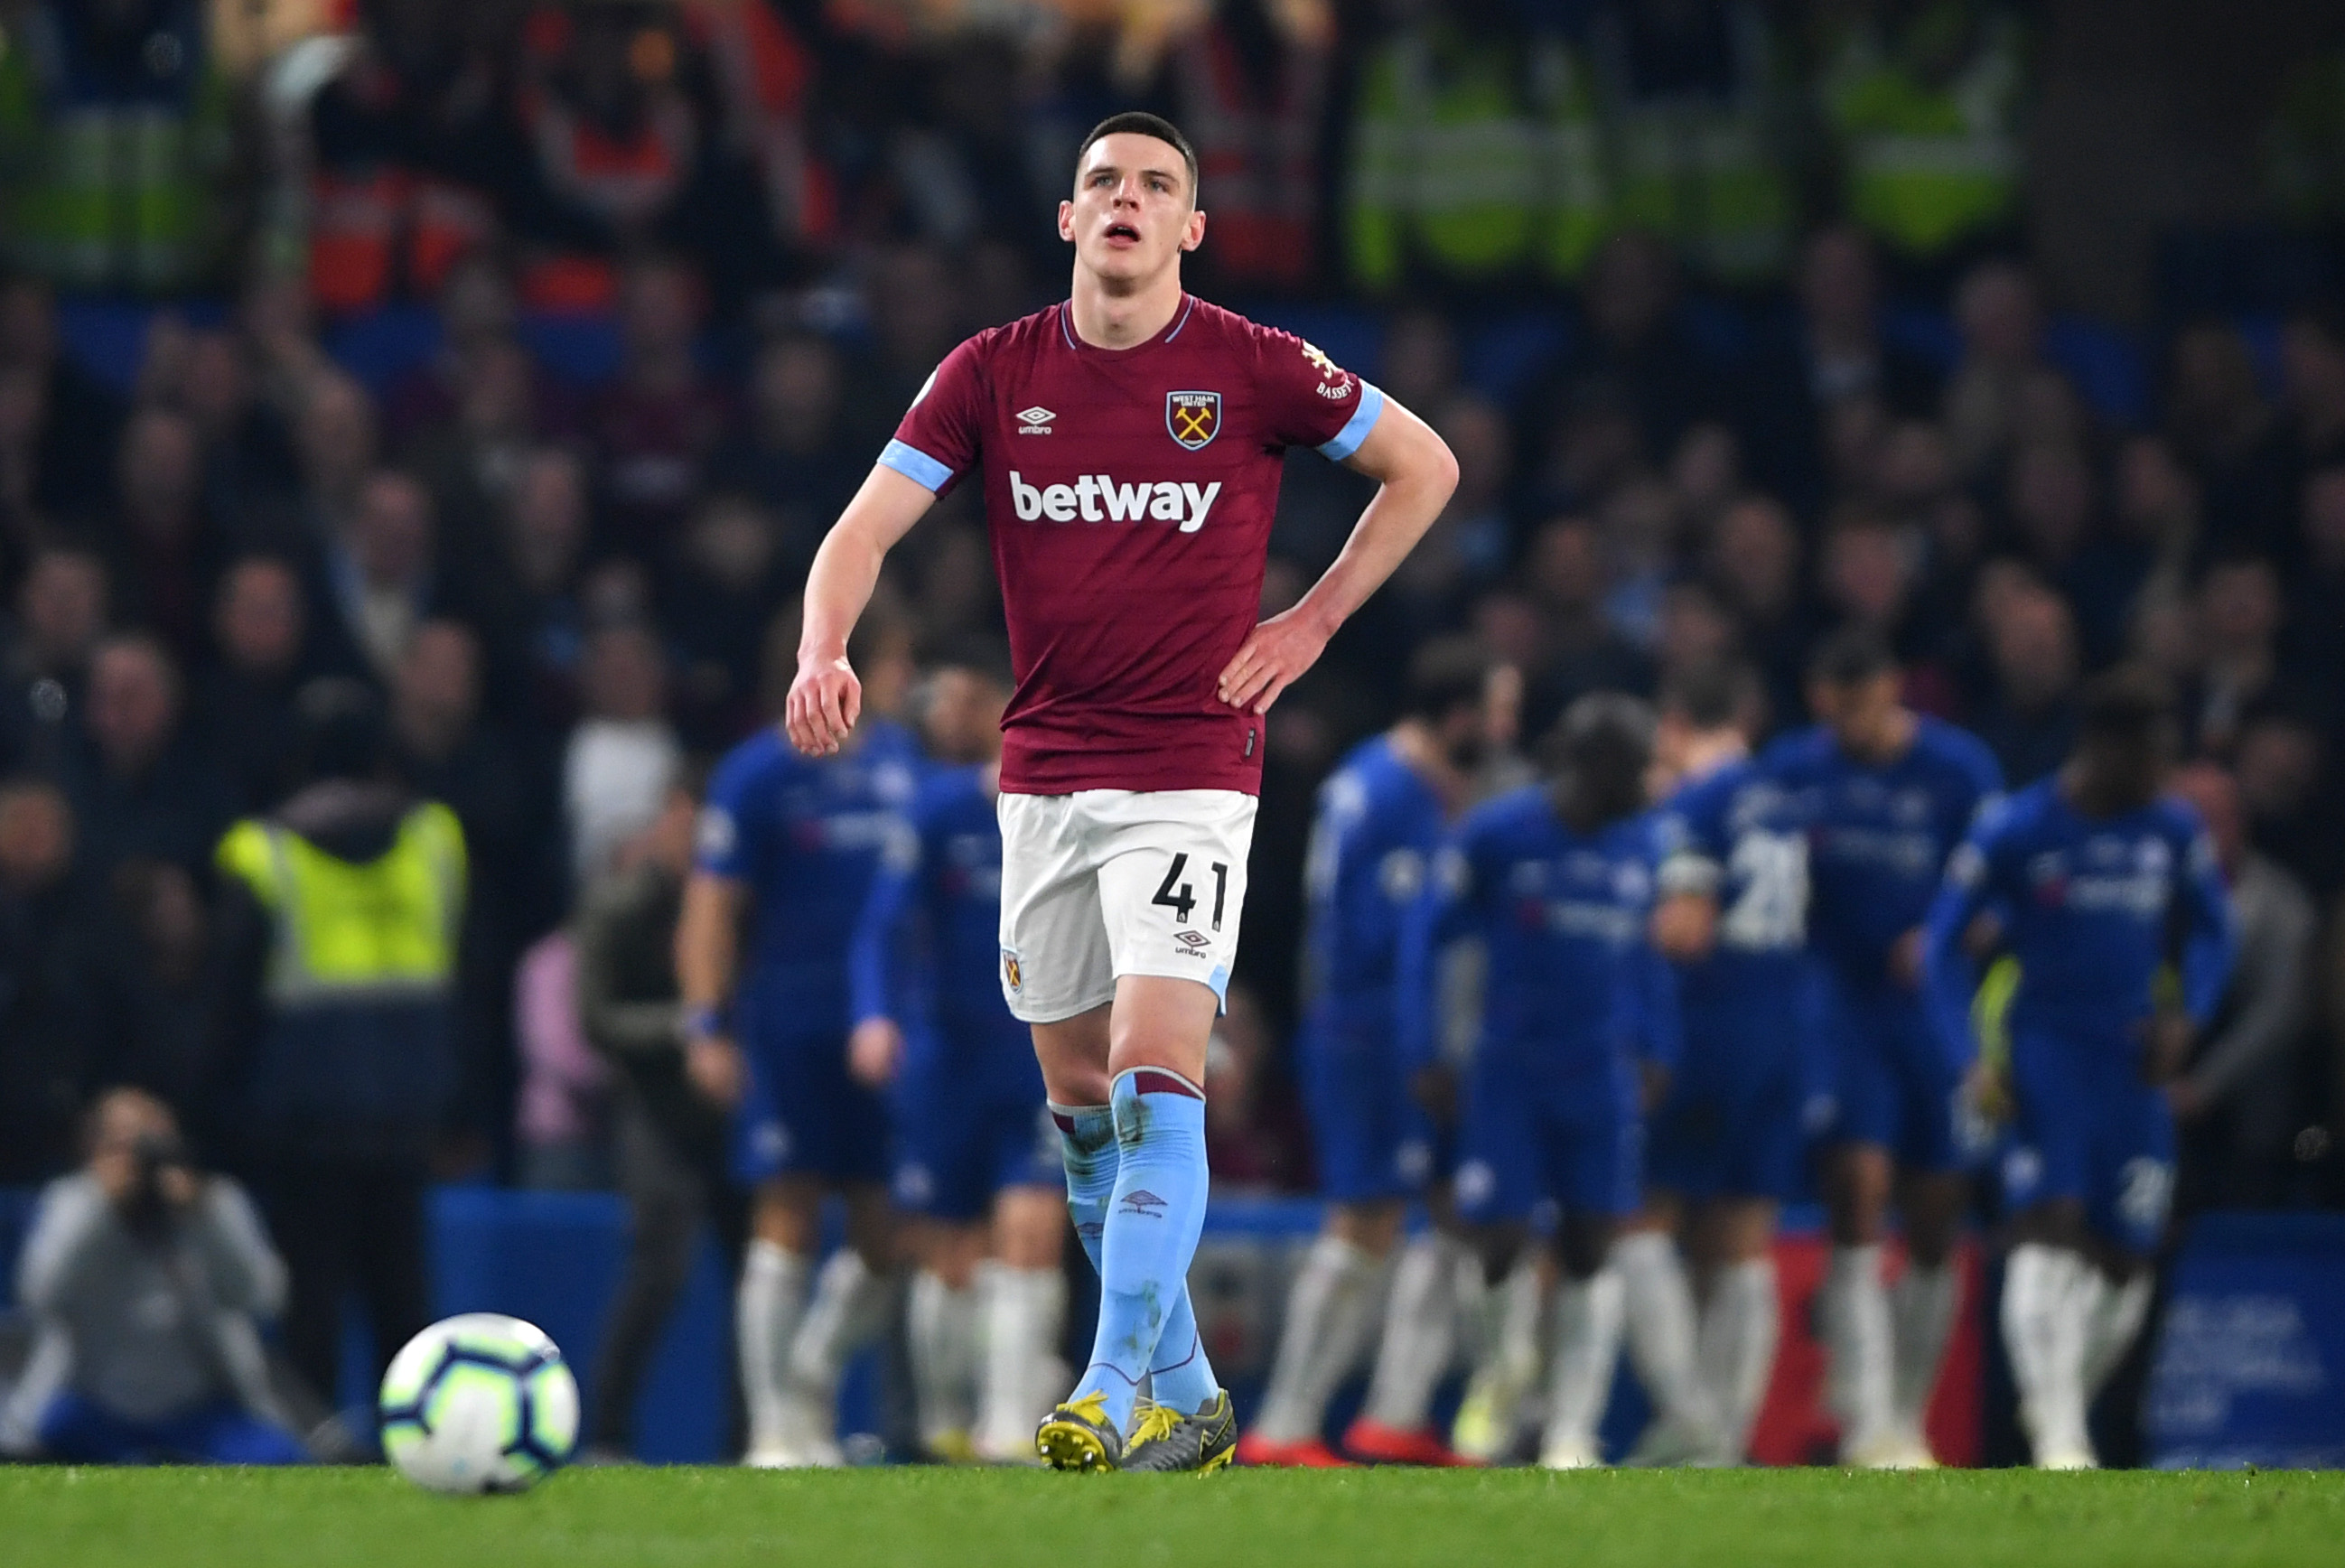 West Ham United vs Chelsea tactical preview (West Ham's Declan Rice looks dejected in the photo)